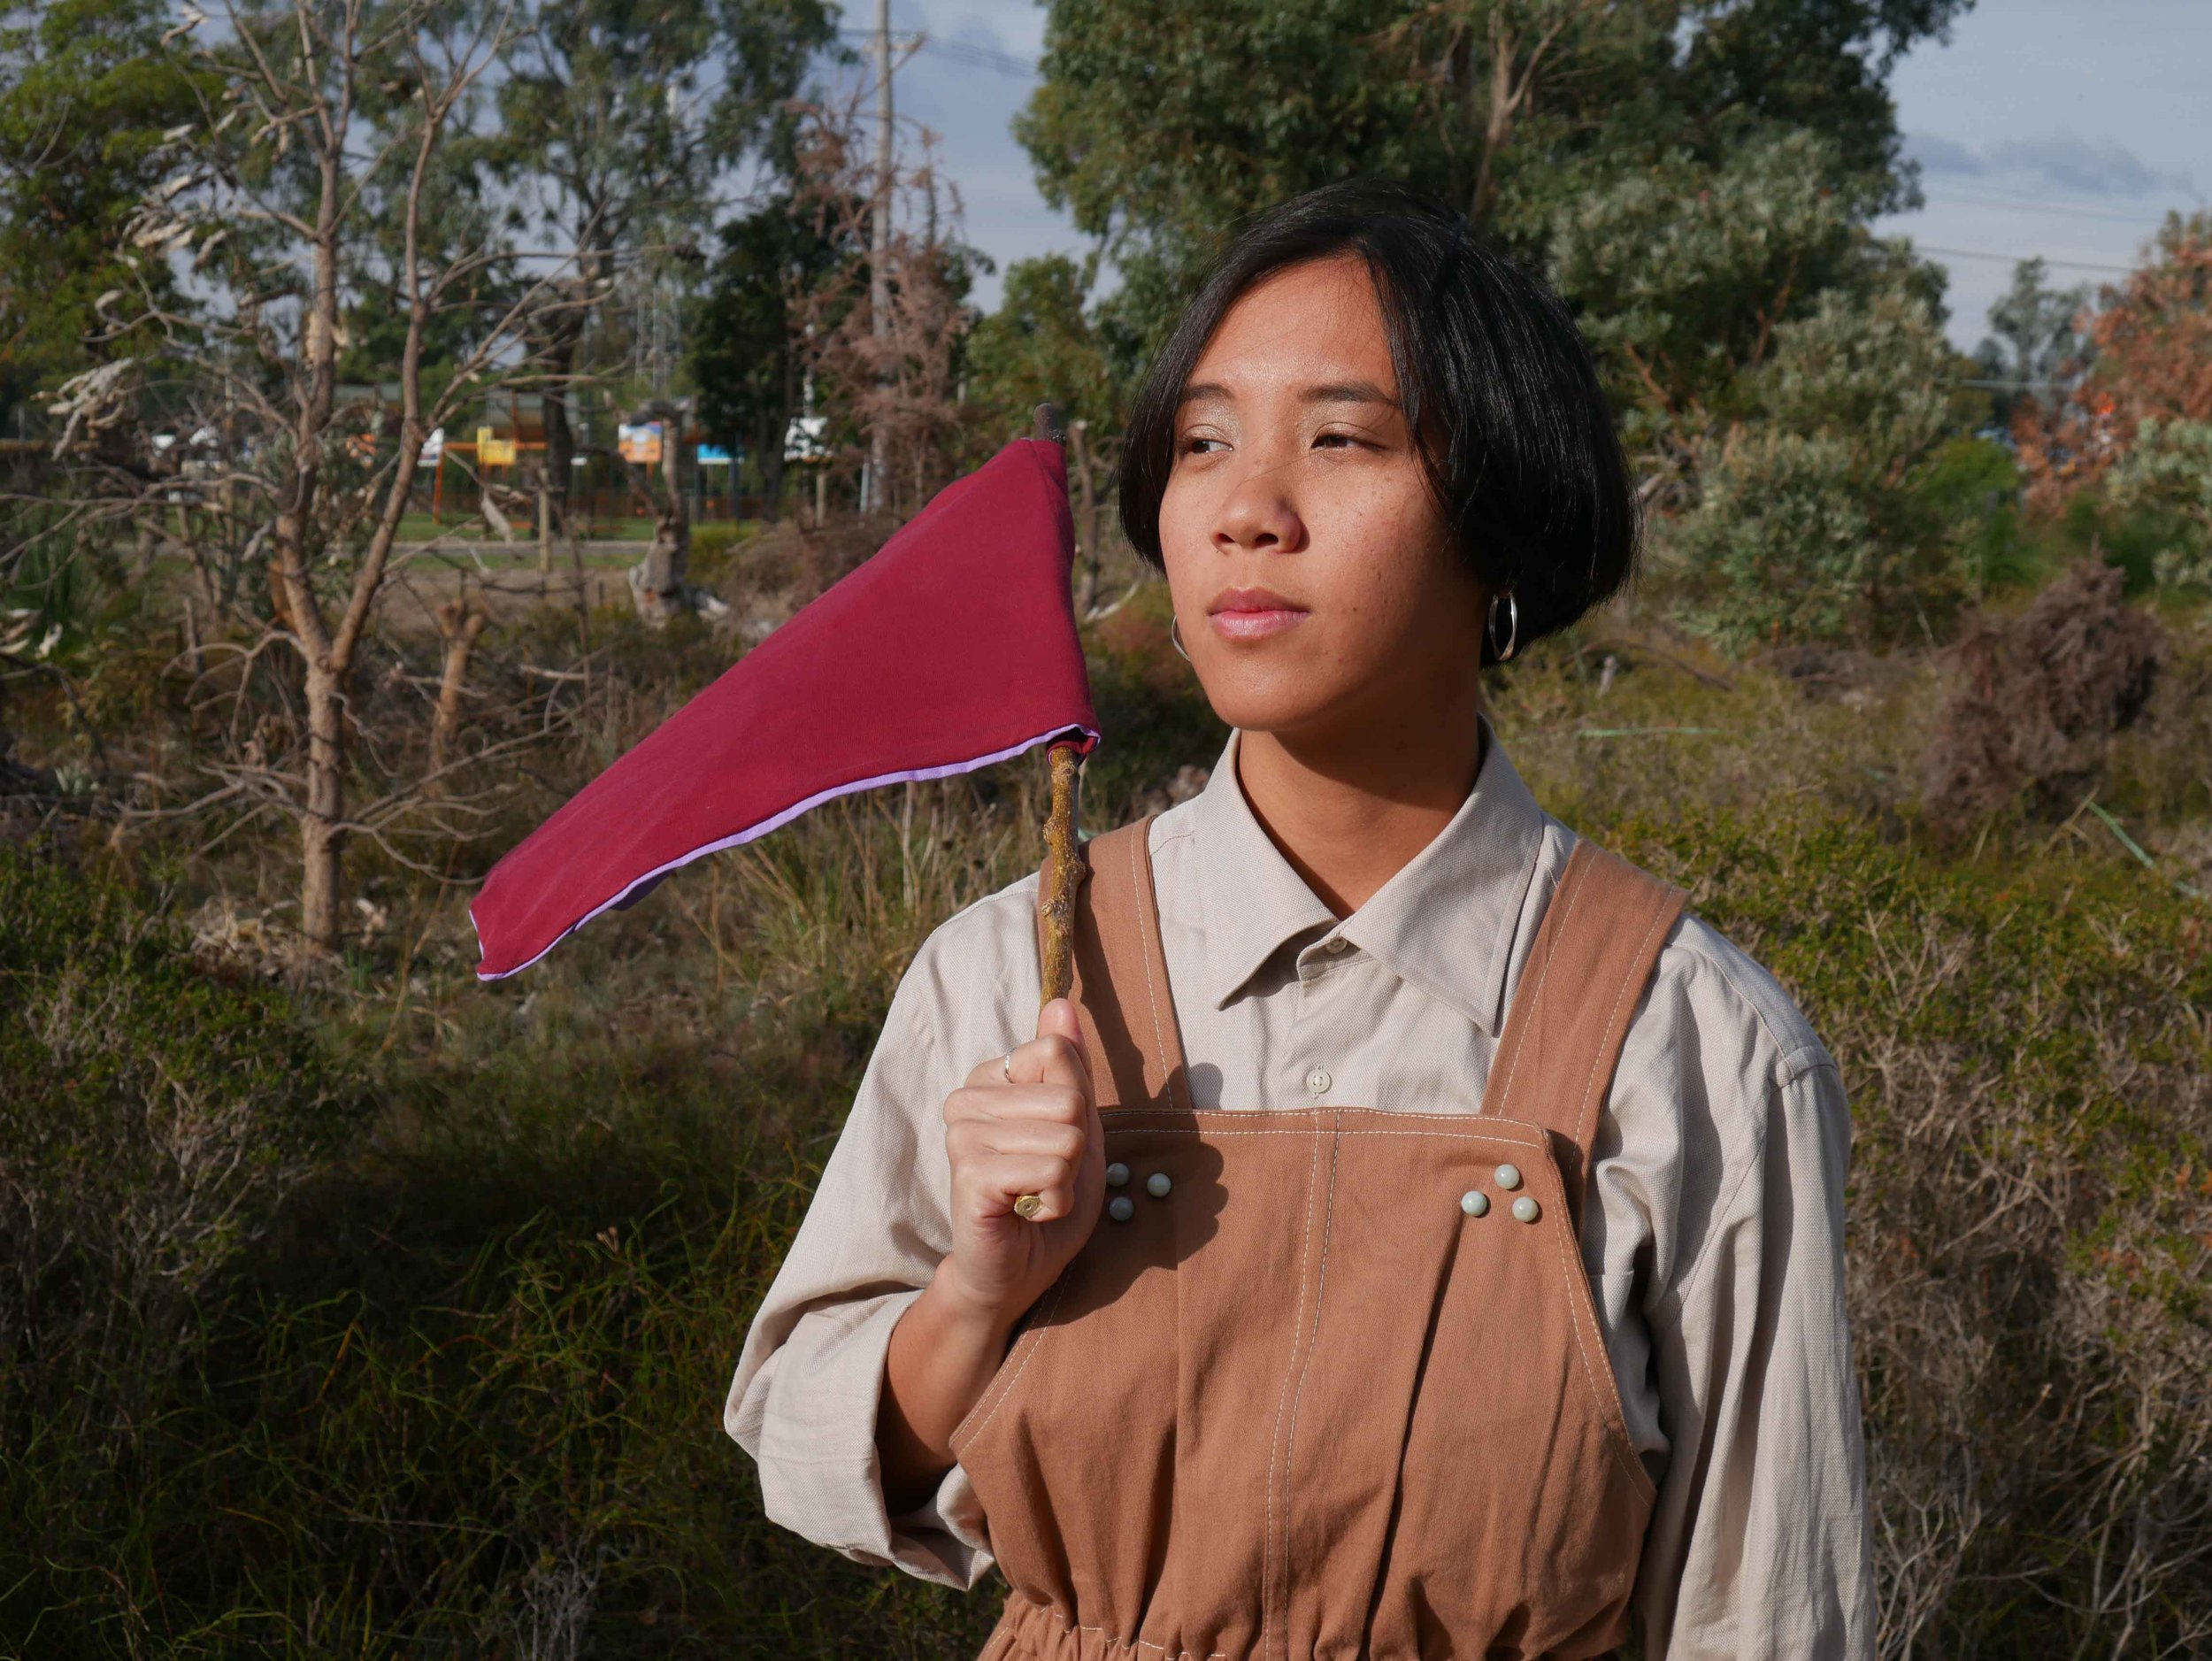 - An emerging multidisciplinary artist and community arts facilitator, Gabby is a Co-Director of Paper Mountain, Coordinator of Belonging and creator of the CaLD & ATSI Creatives of WA group. She is currently a Creative Fellow at the State Library of WA.